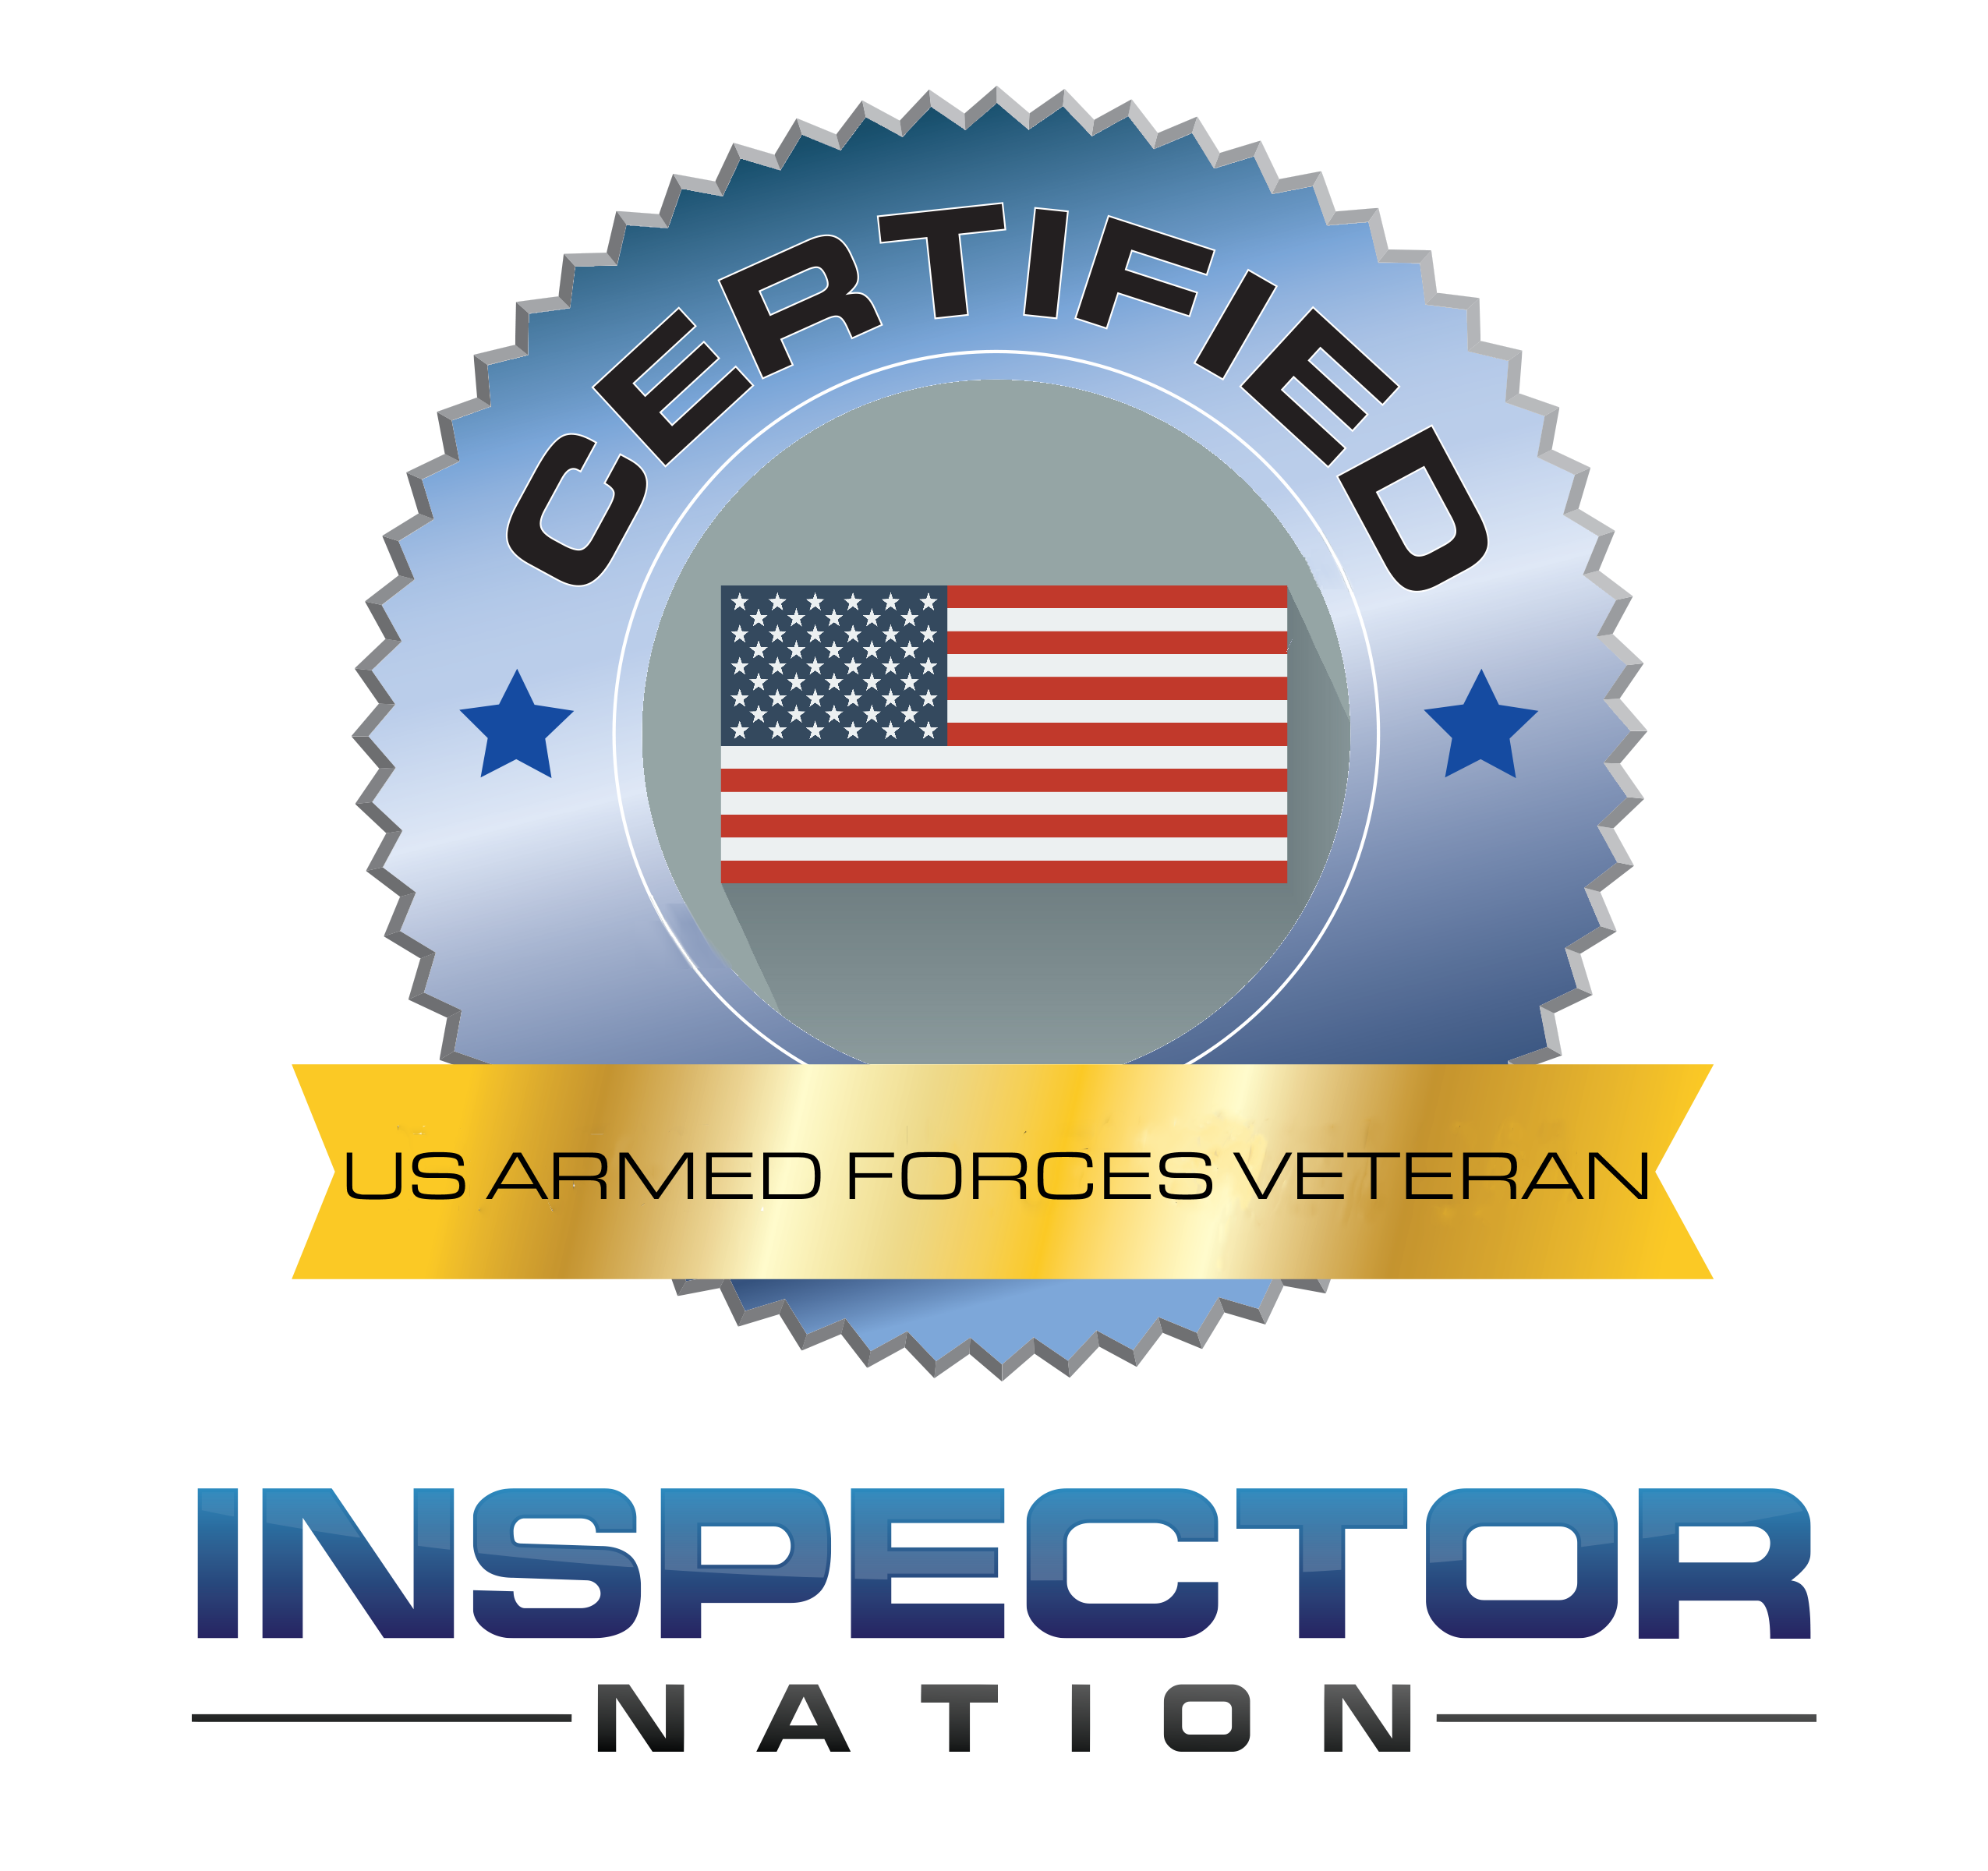 GregoryEnterprises2017Copyright-US-Armed-Forces-Veteran.png